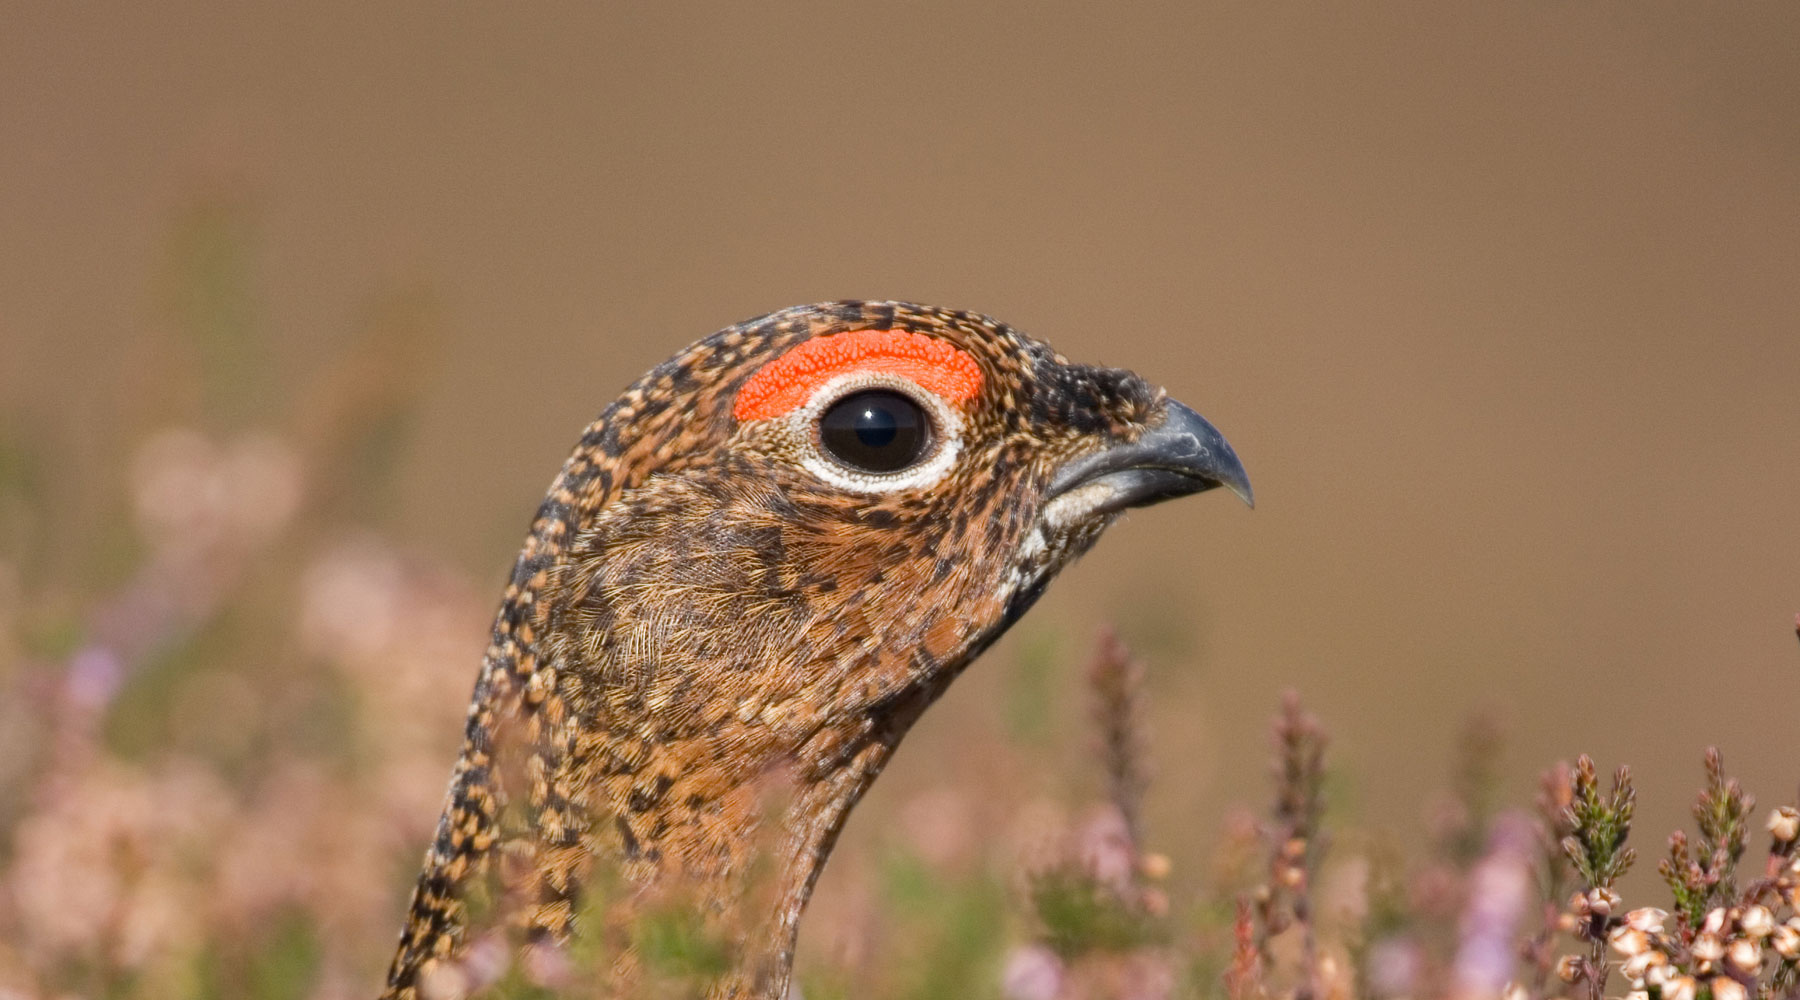 Tom Marshall | Red Grouse in Heather